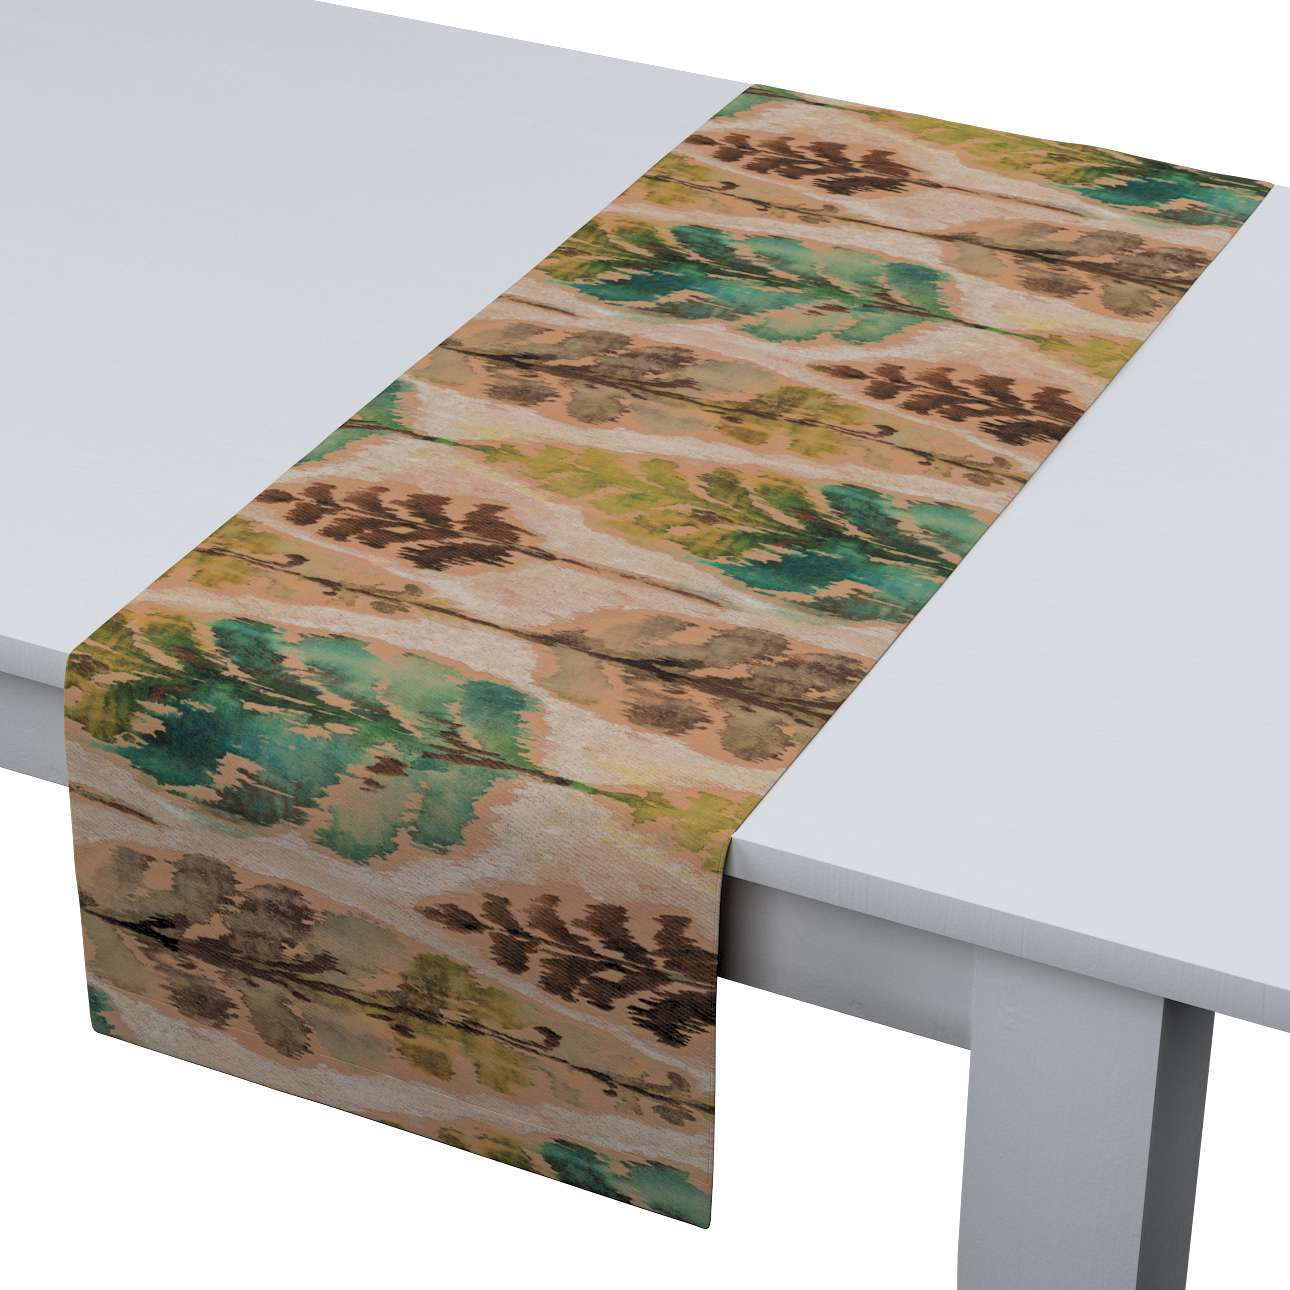 Table runner 40 x 130 cm (16 x 51 inch) in collection Urban Jungle, fabric: 141-60